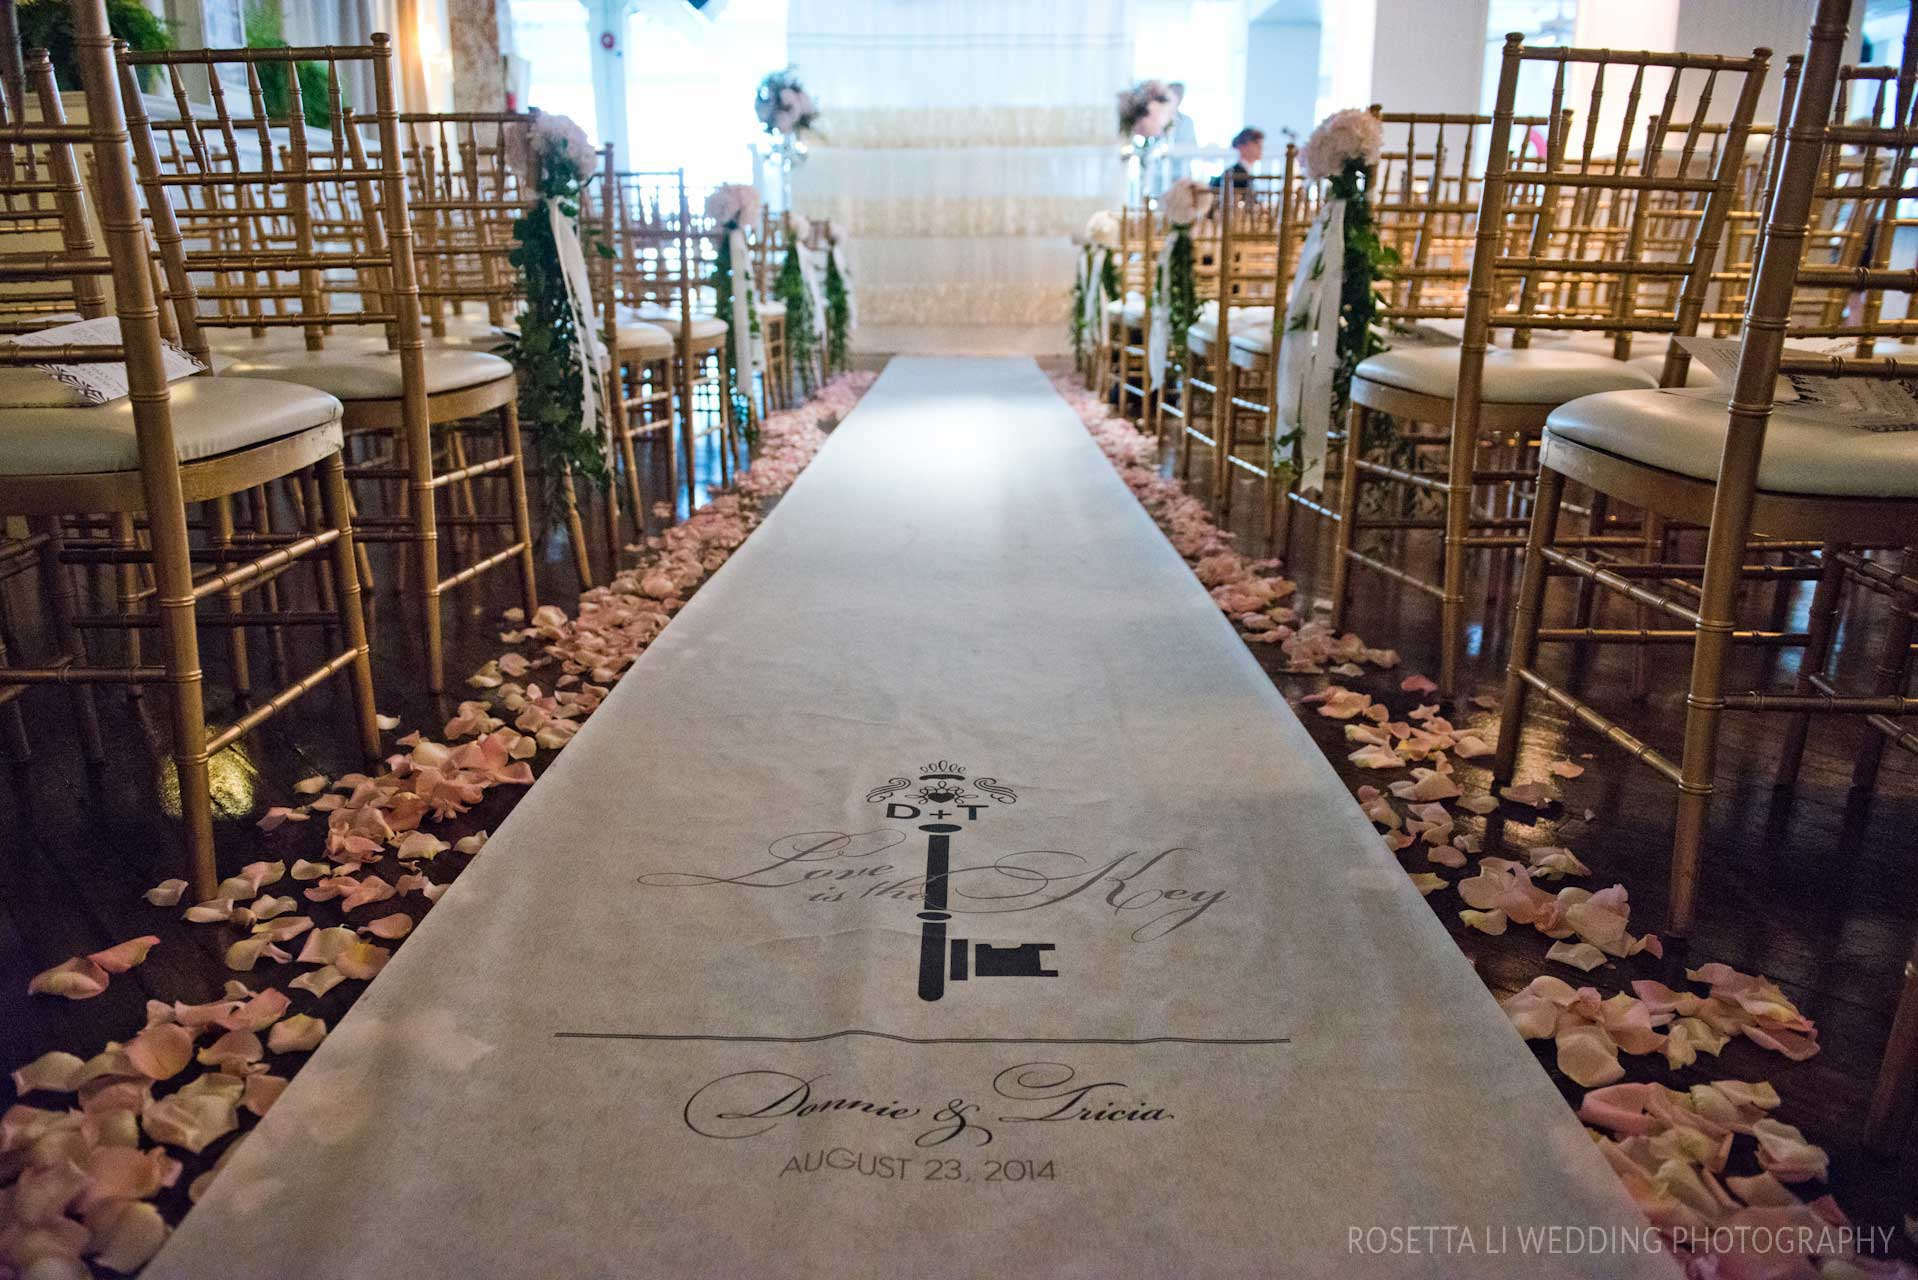 Unique Wedding Venues Toronto - Wedding Aisle Runner - Urban Loft